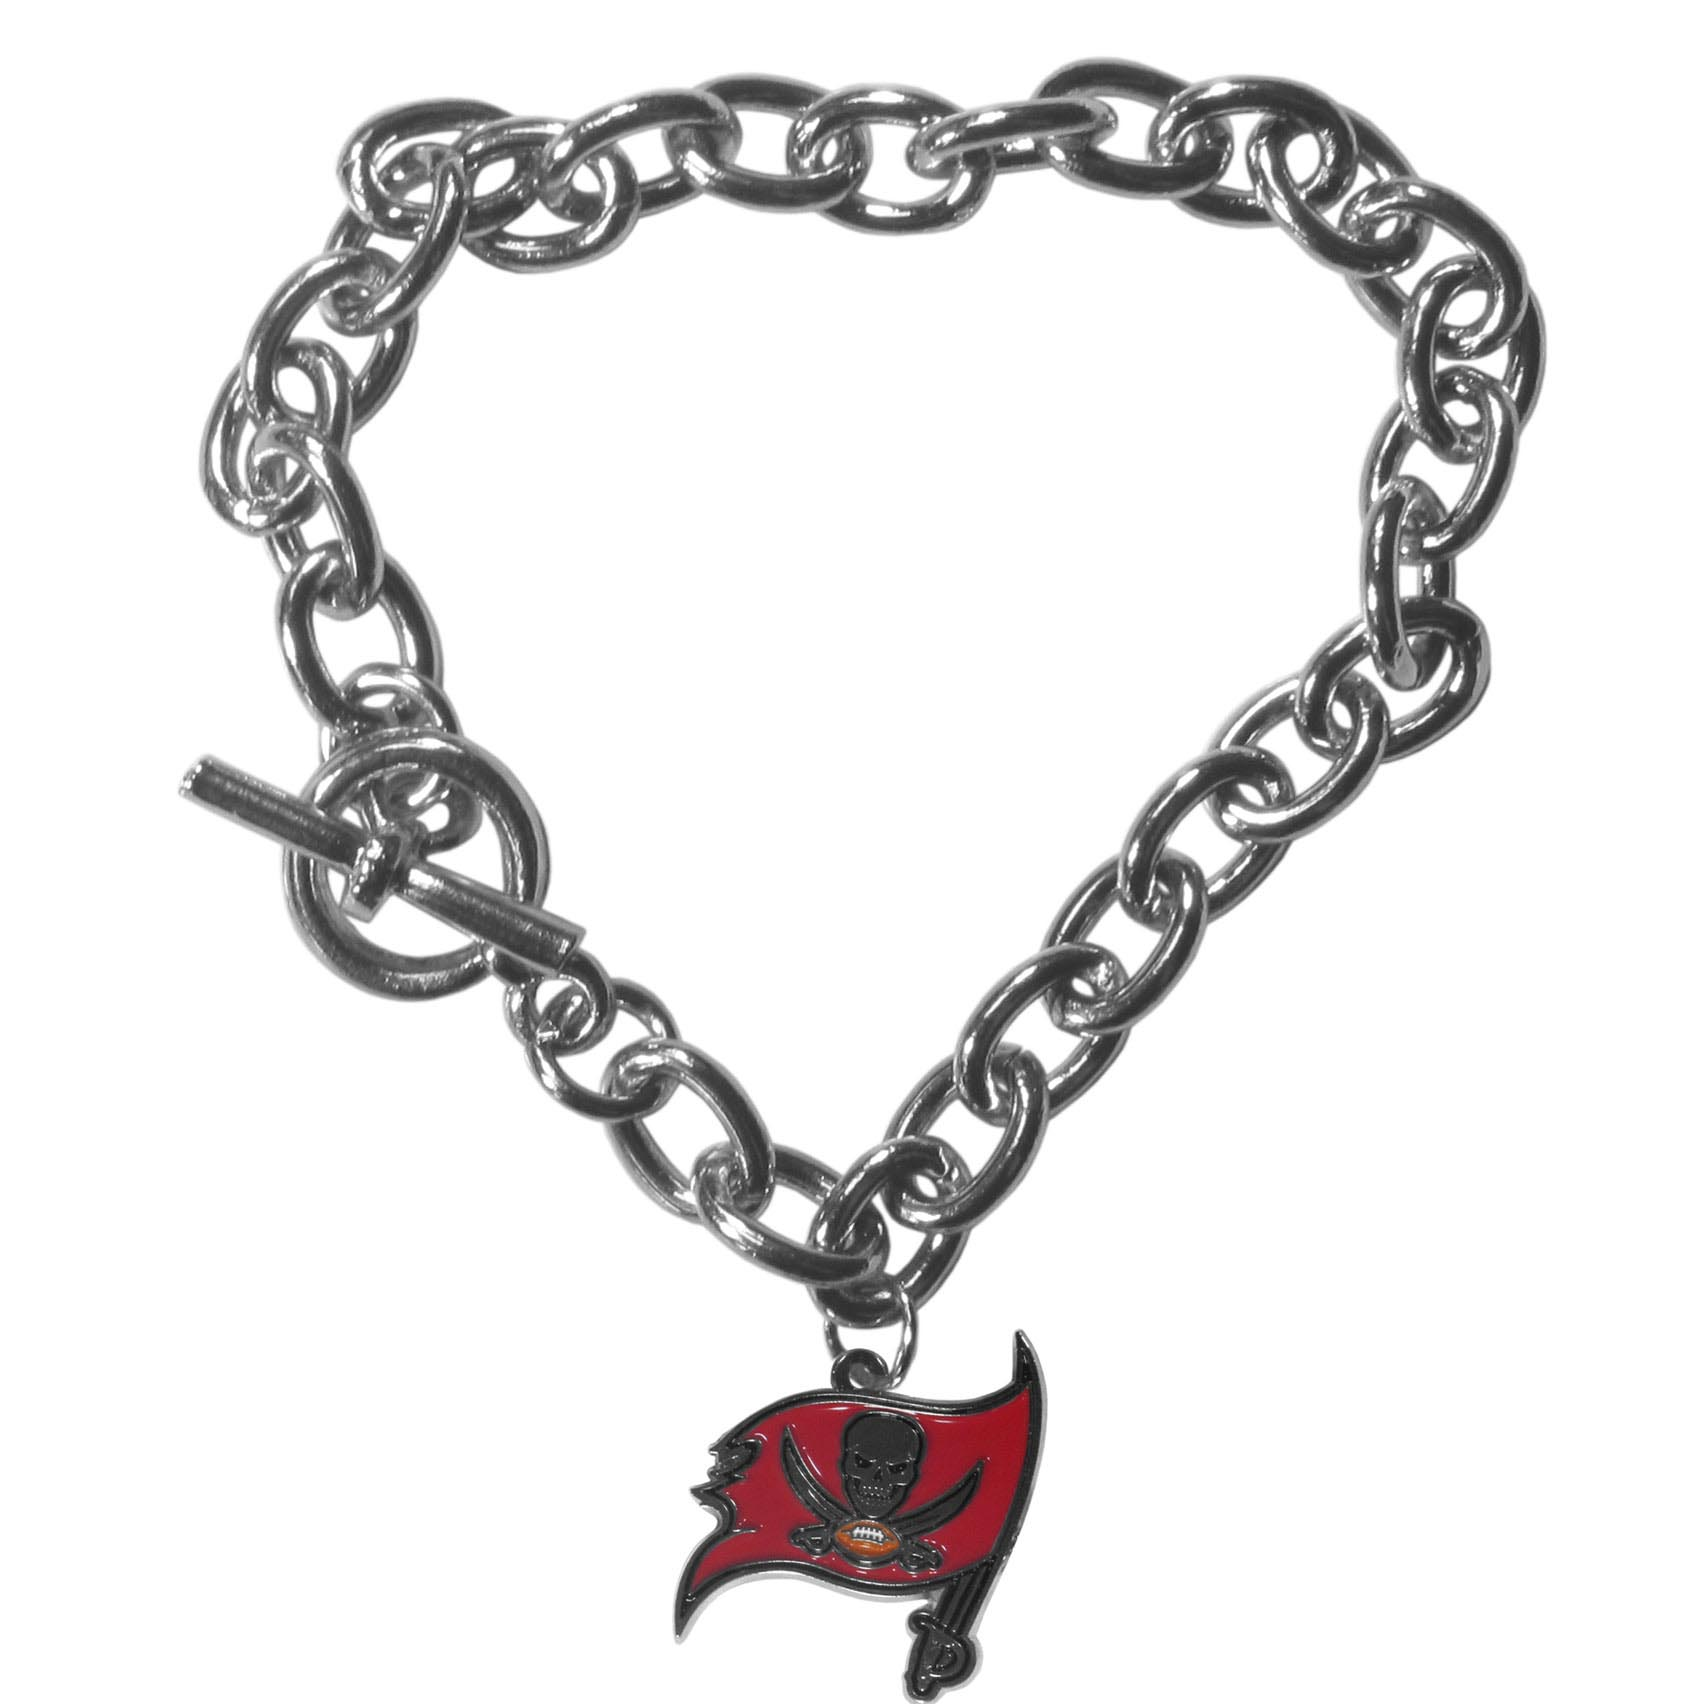 Tampa Bay Buccaneers Charm Chain Bracelet - Our classic single charm bracelet is a great way to show off your team pride! The 7.5 inch large link chain features a high polish Tampa Bay Buccaneers charm and features a toggle clasp which makes it super easy to take on and off.